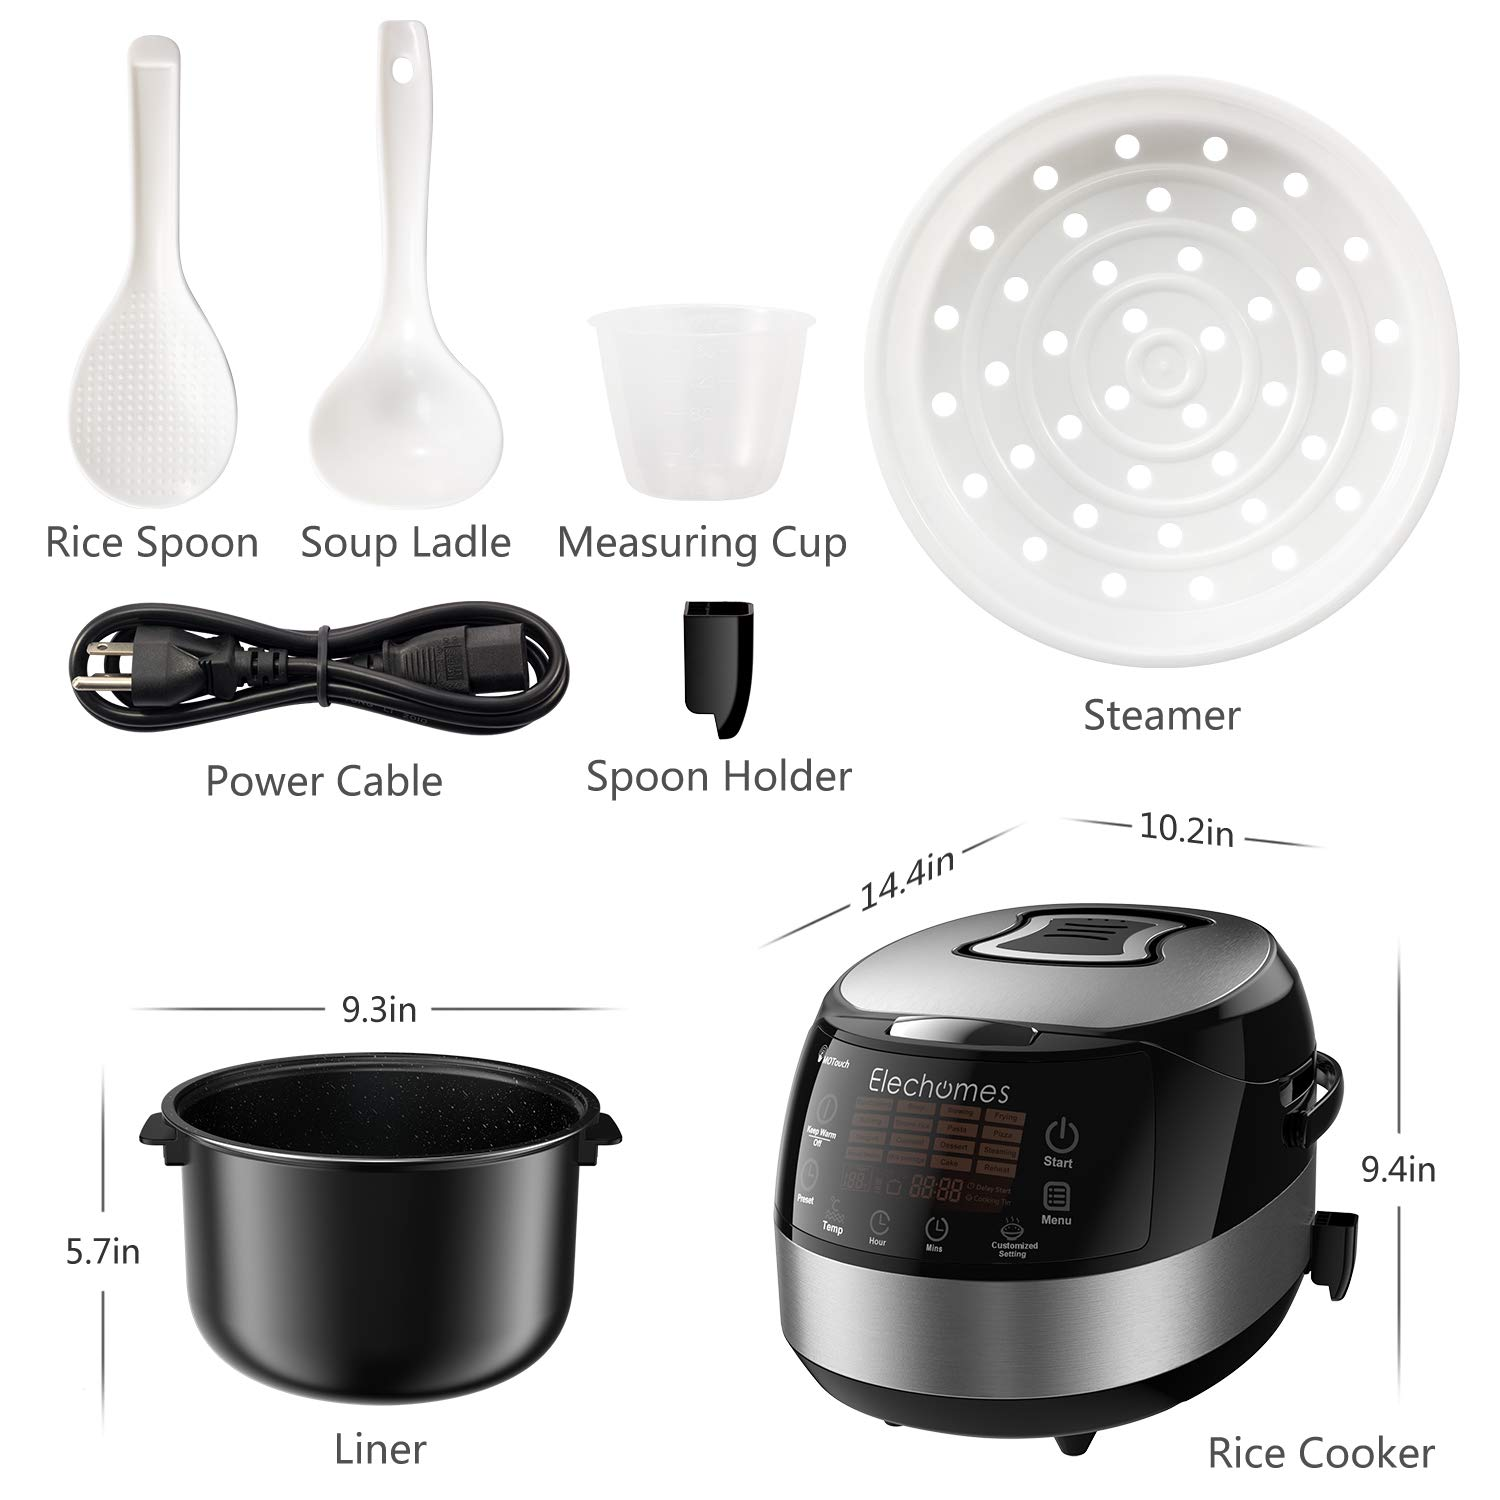 Elechomes LED Touch Control Rice Cooker, 16-in-1 Multi-function Cooker, 10-Cups Uncooked Warmer Cooker with Steam & Rinse Basket, CR502 by Elechomes (Image #8)